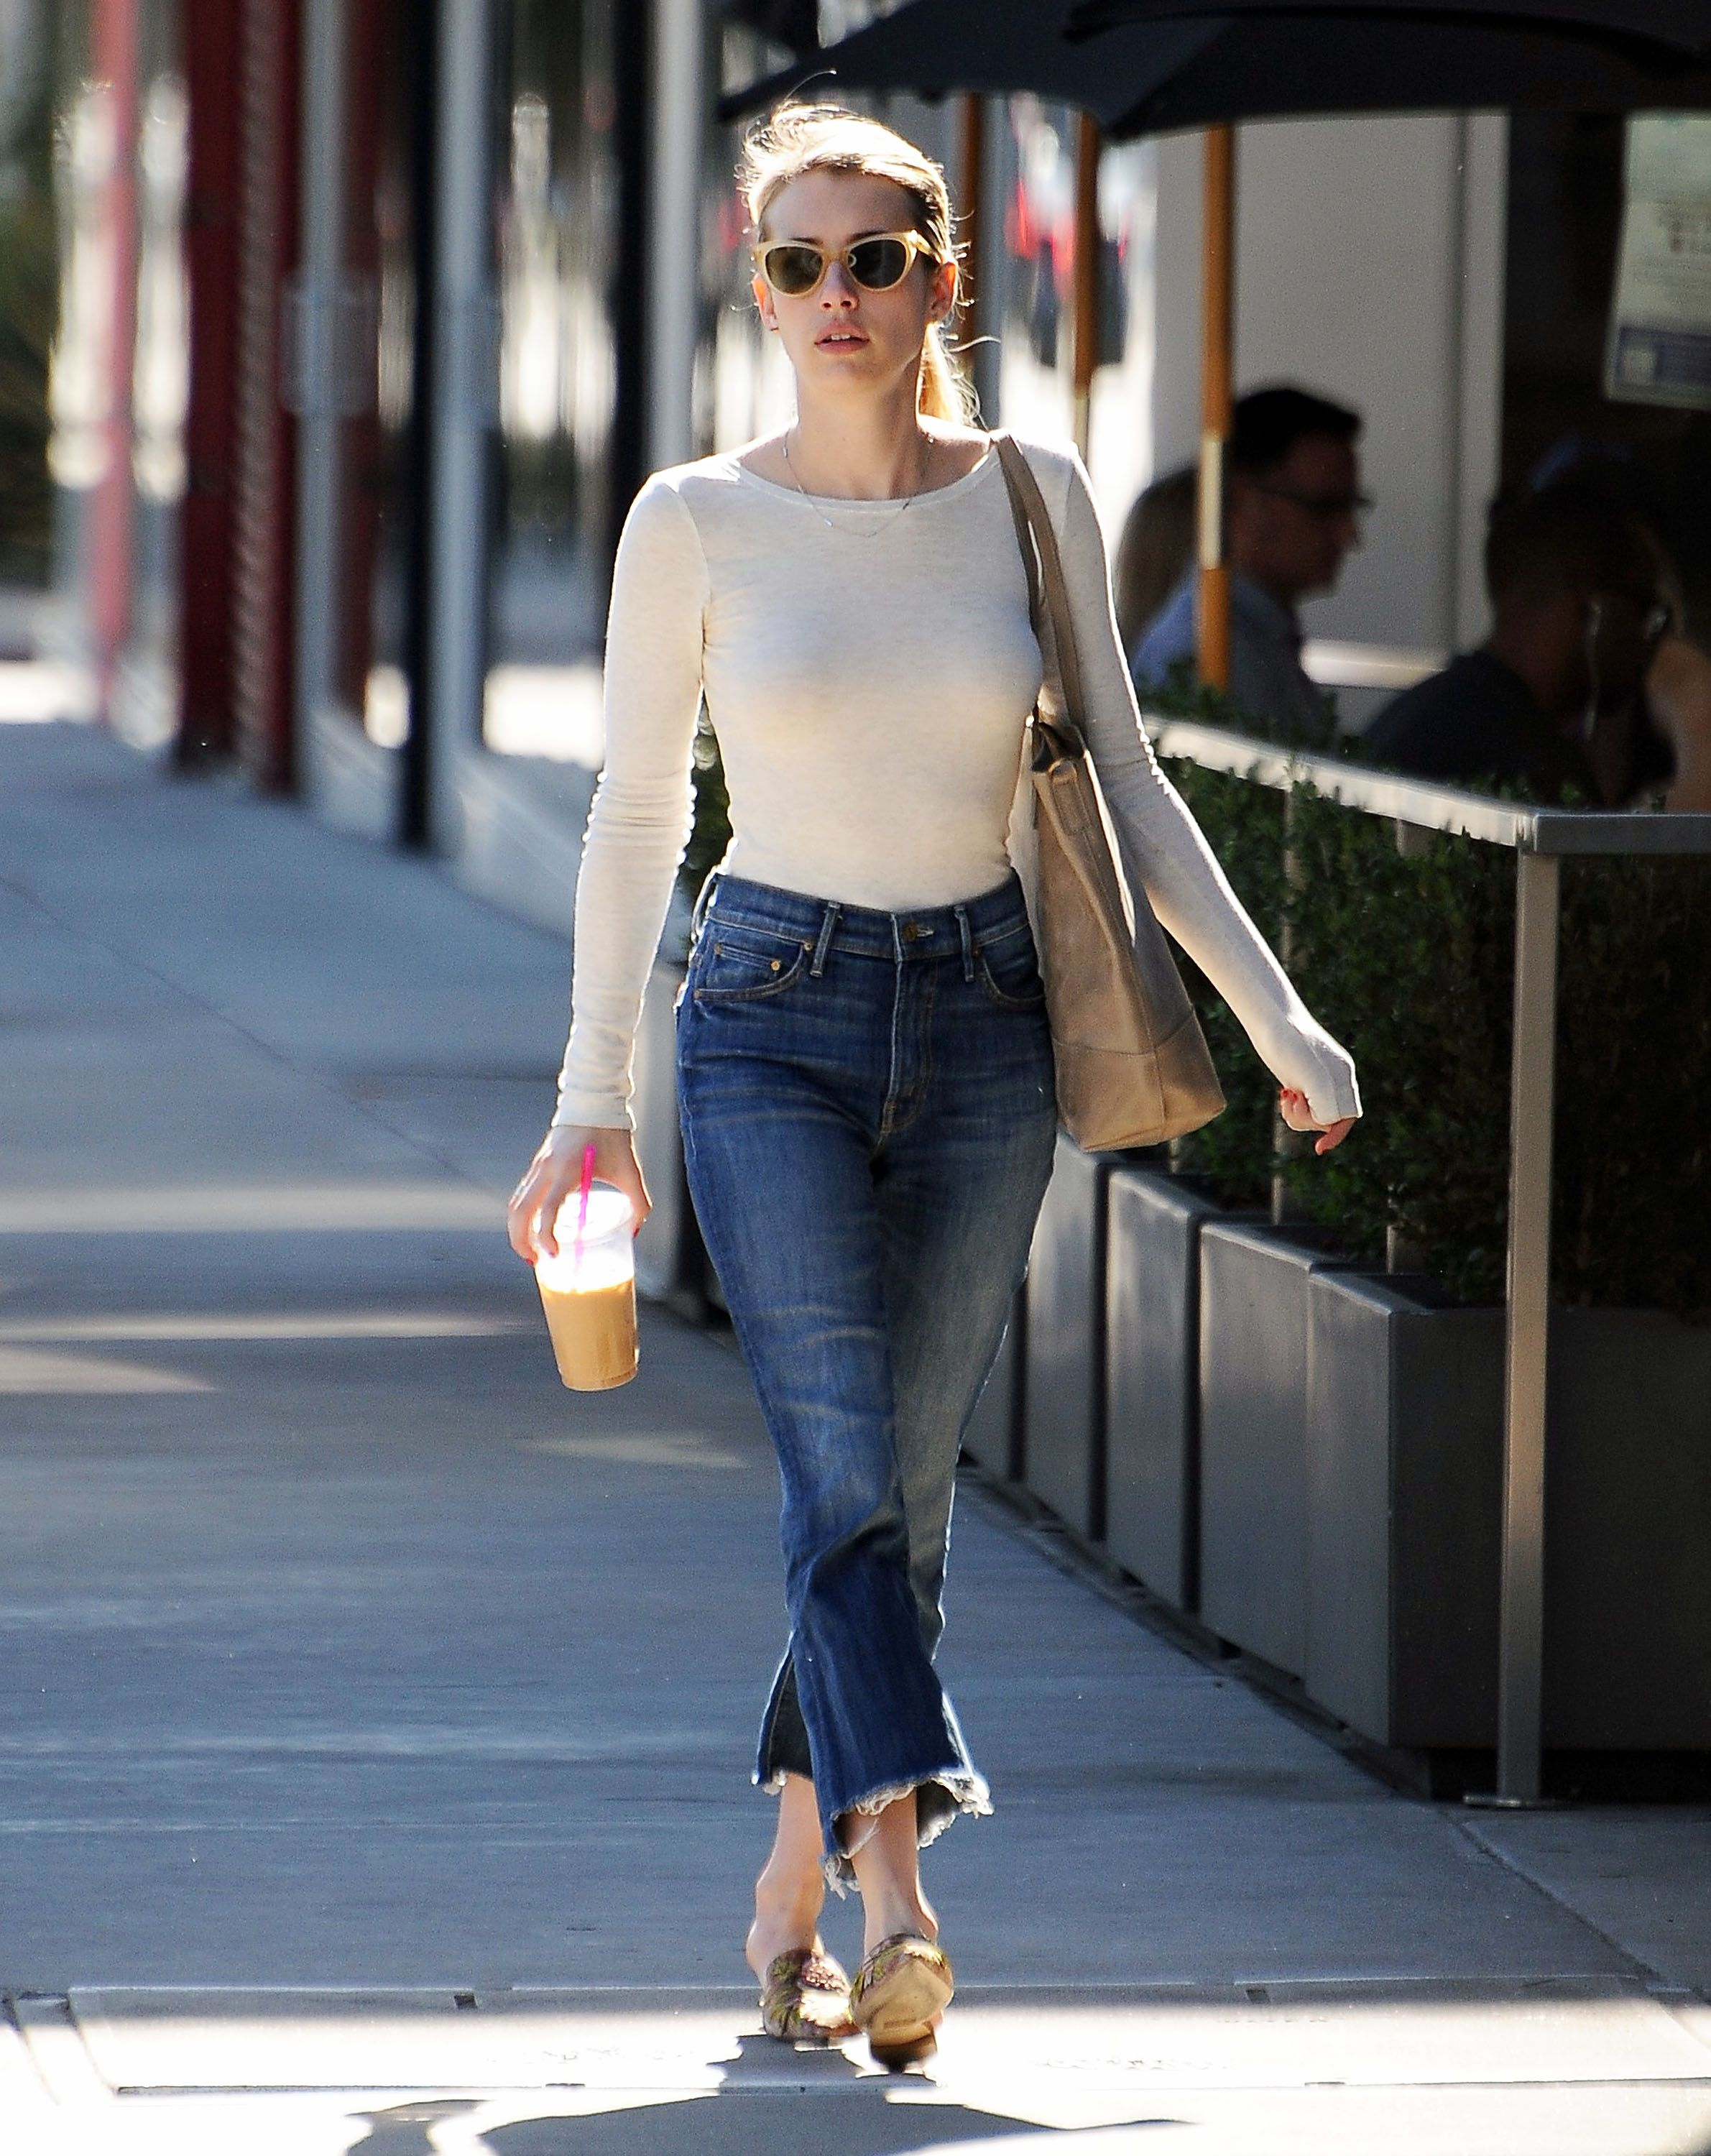 508c6dcef79 Emma Roberts out in LA 11 14 16 More